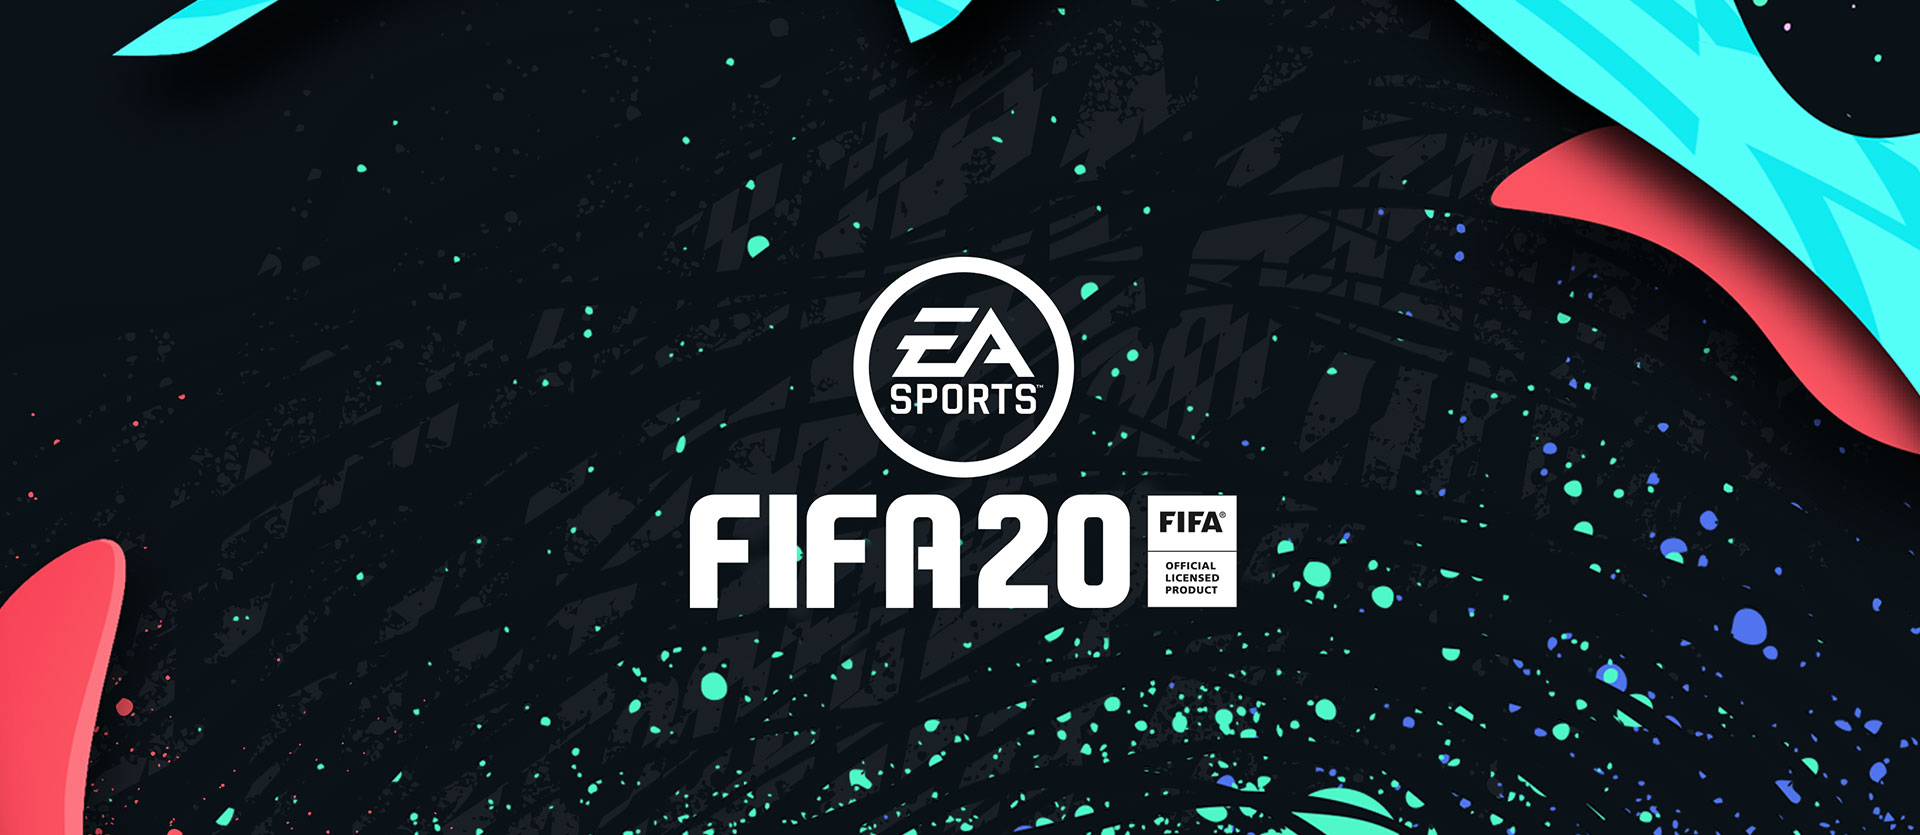 EA Sports logo, FIFA 20, FIFA Official Licensed Product, colourful paint splatter